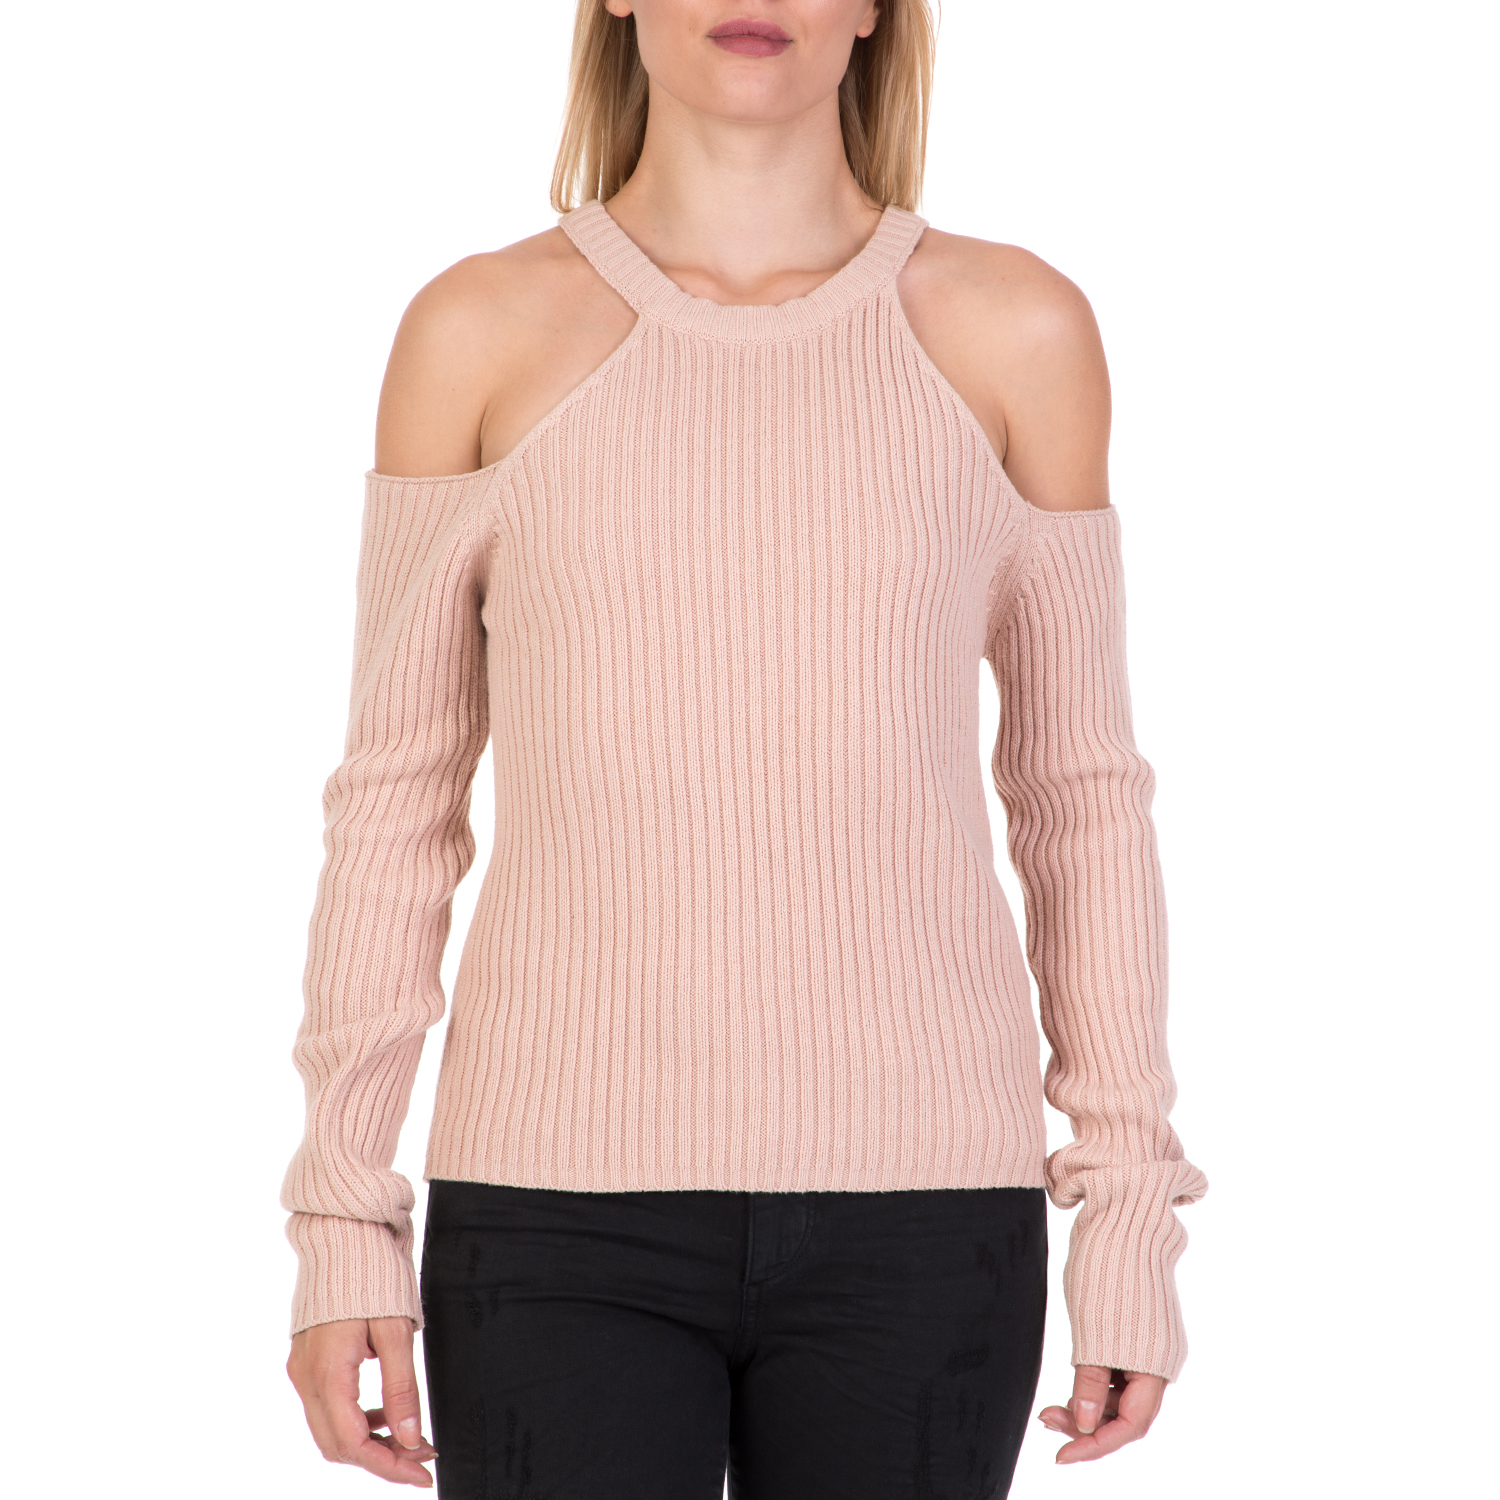 aaf48877bfb4 FUNKY BUDDHA – Γυναικεία off the shoulders μπλούζα FUNKY BUDDHA ροζ. Factory  Outlet